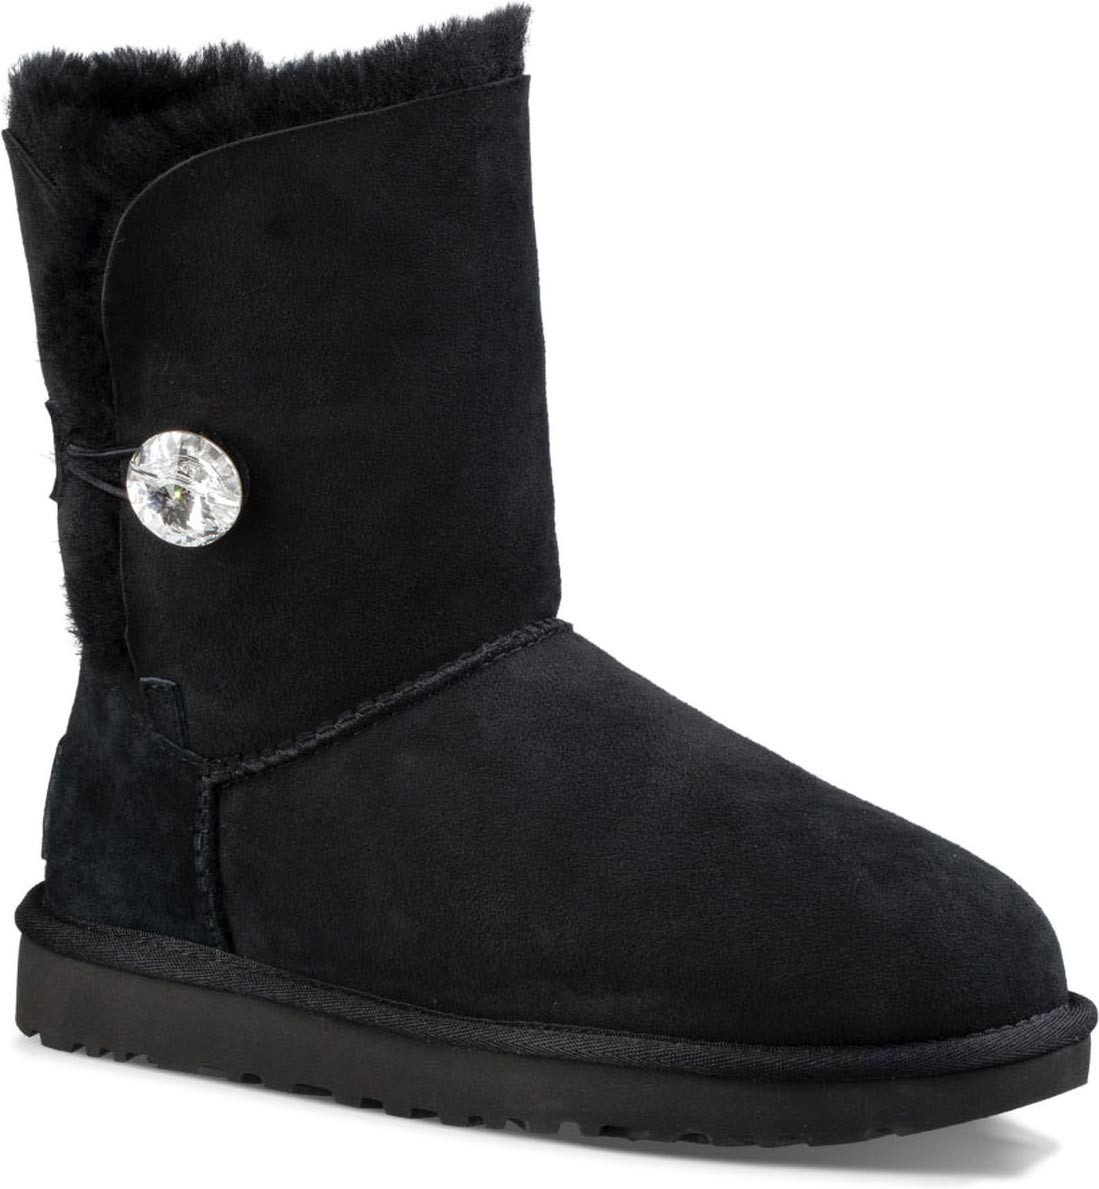 black ugg boots with diamond button